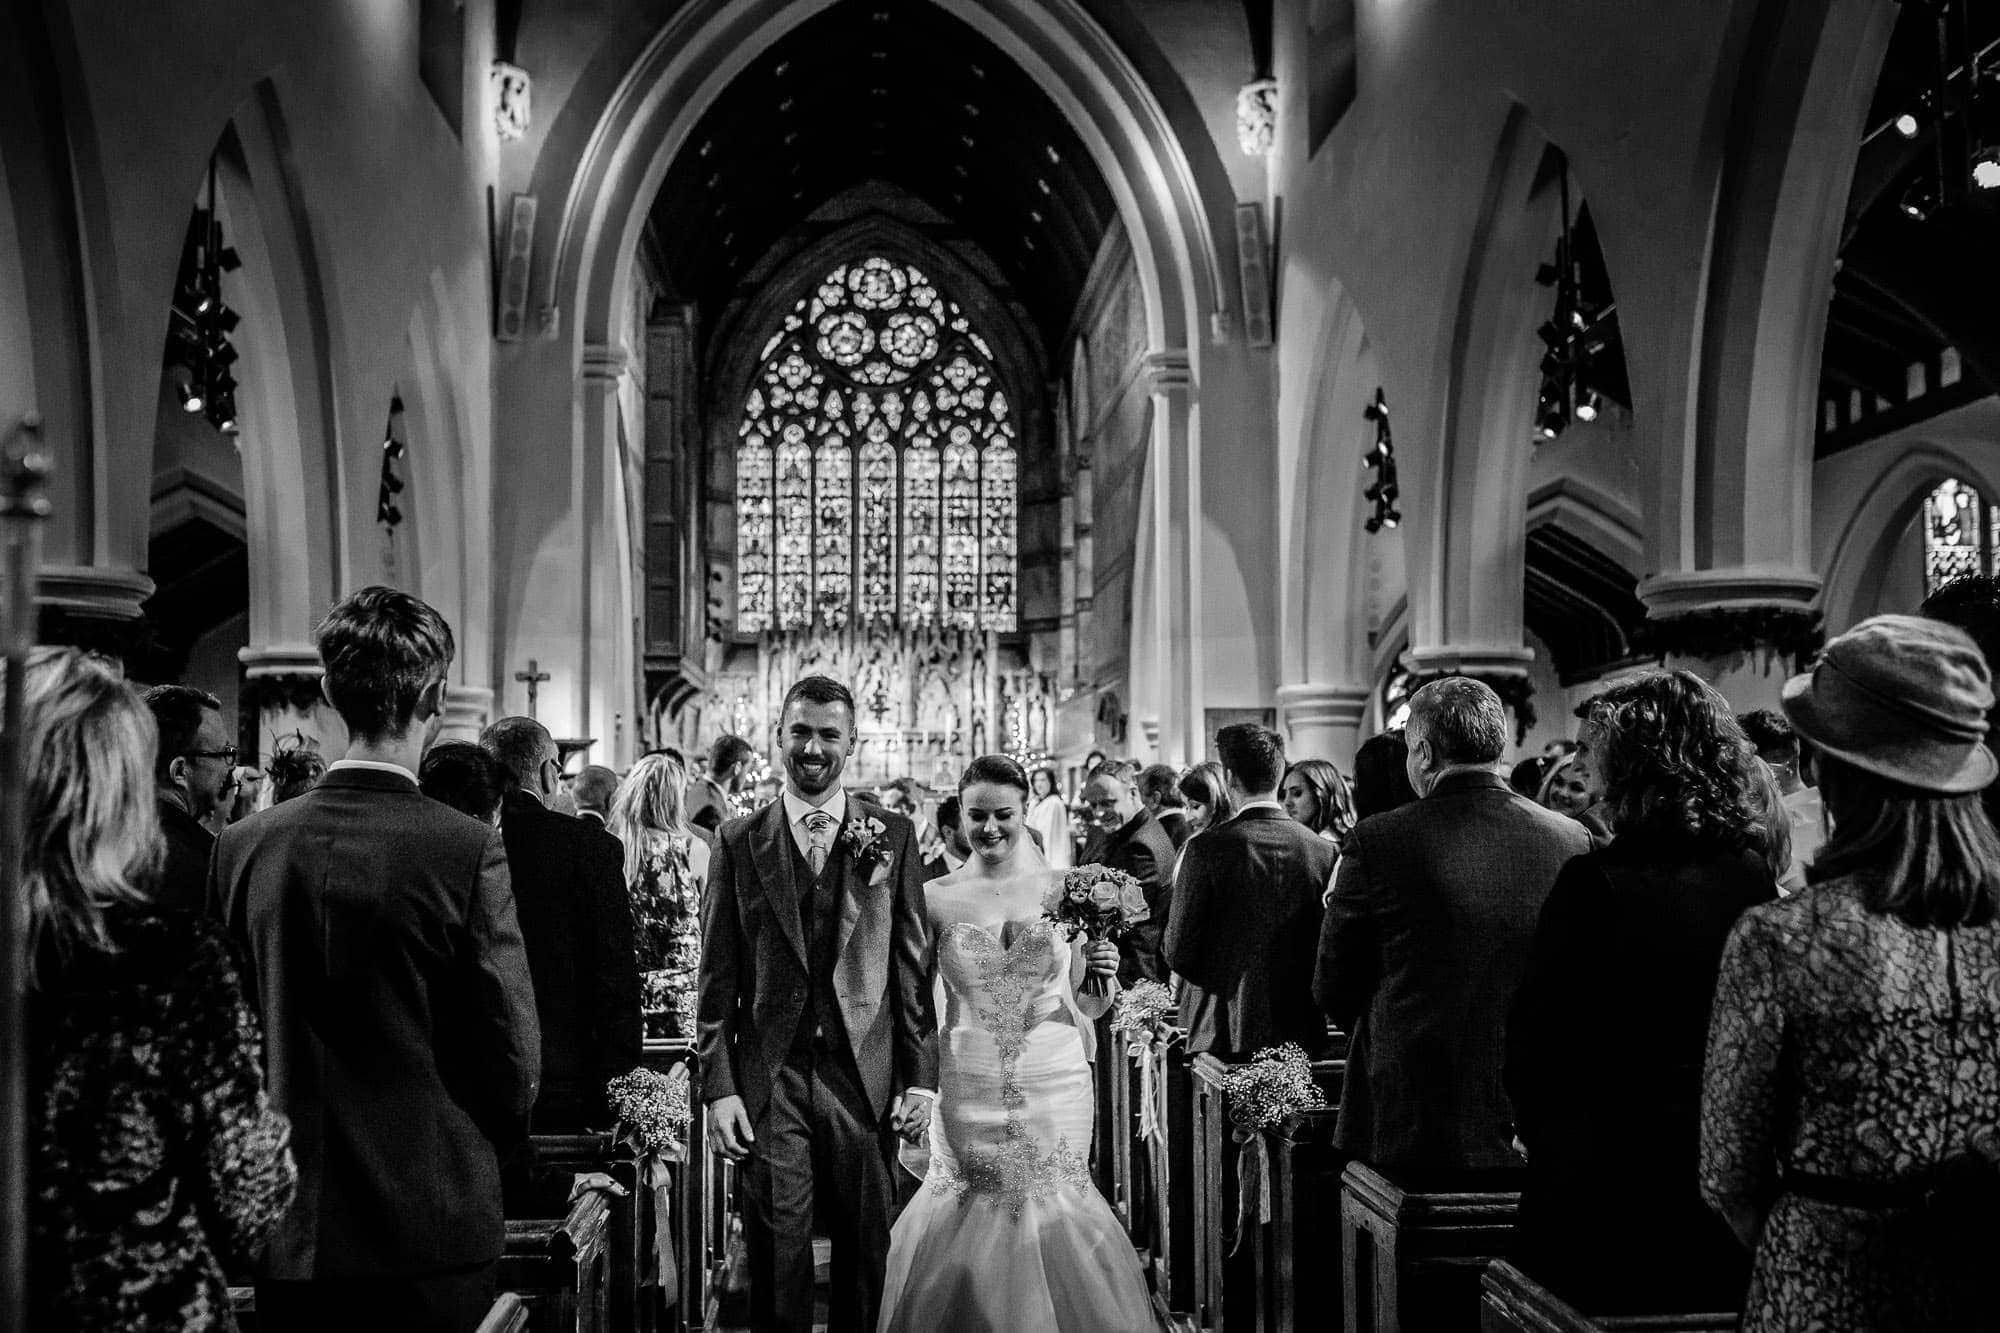 Wedding Photography St James Parish Church, Weybridge